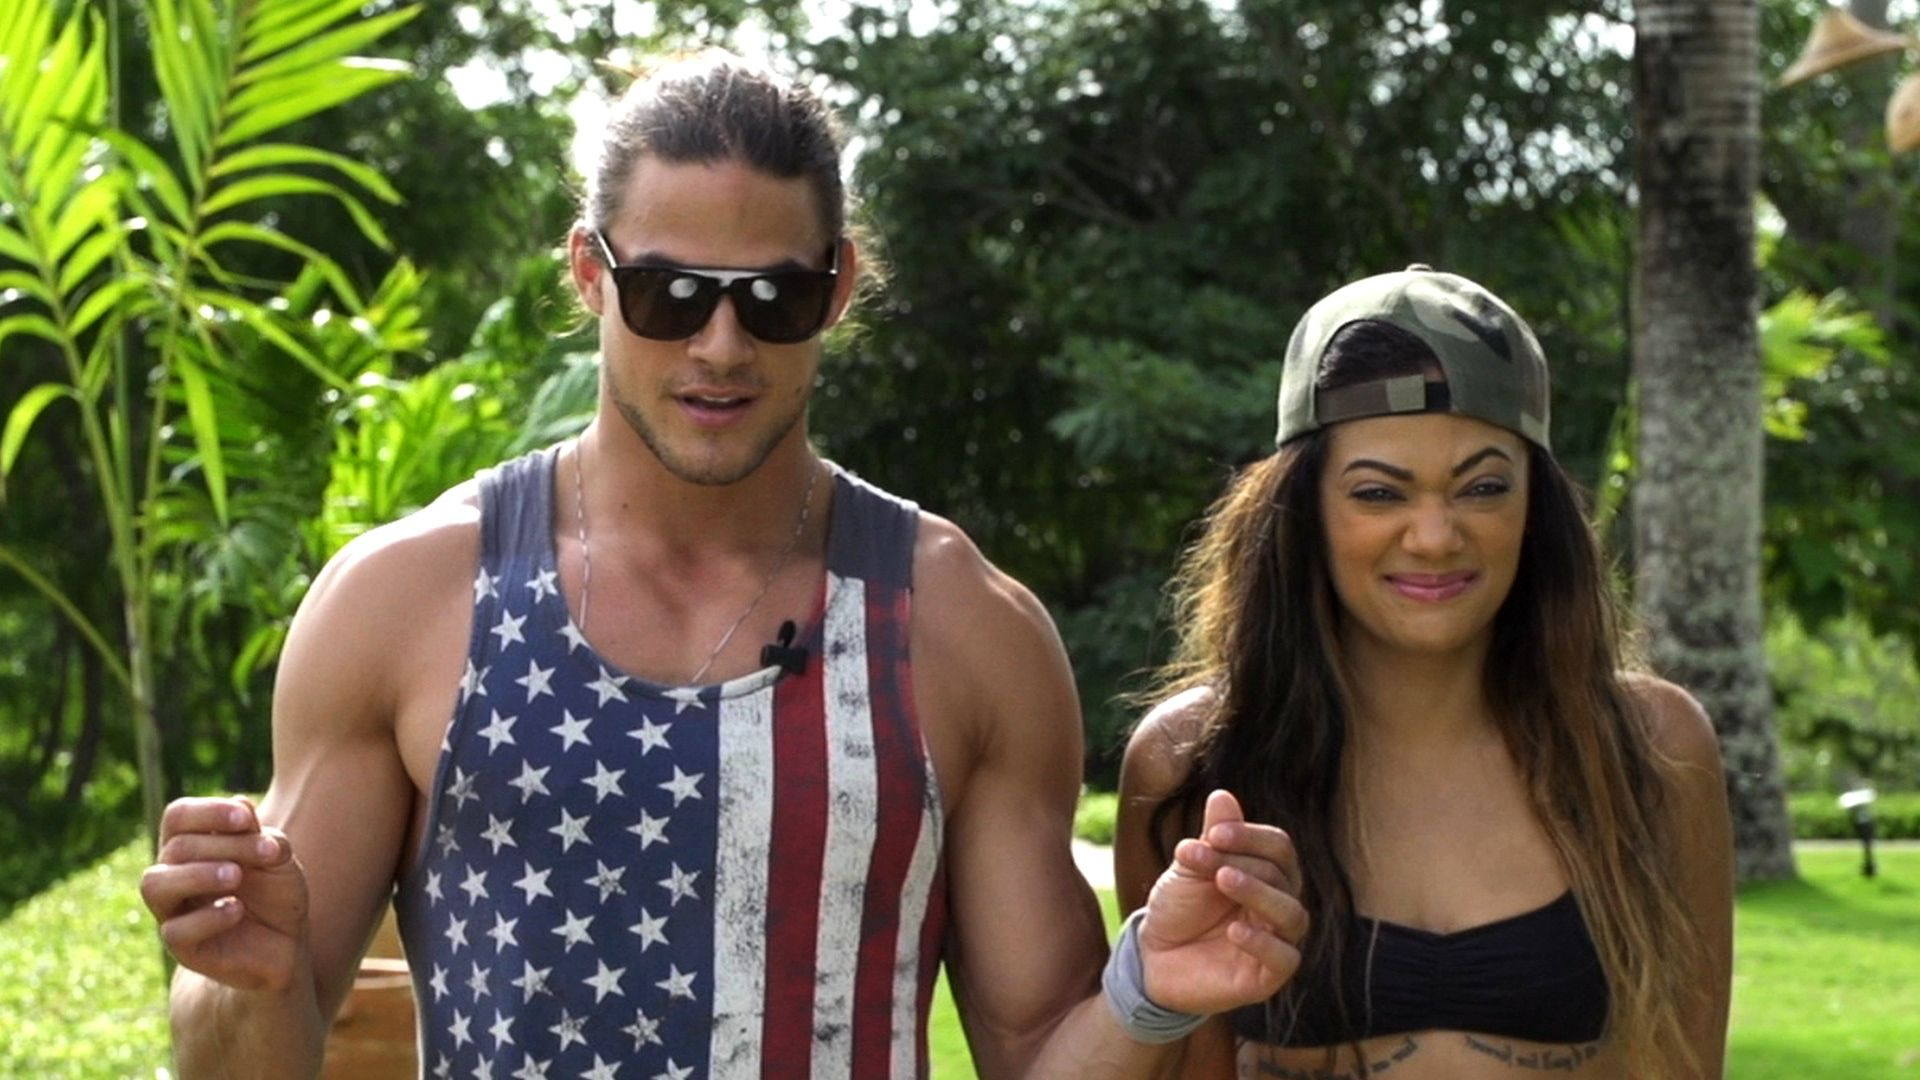 zach and jonna mtv dating show